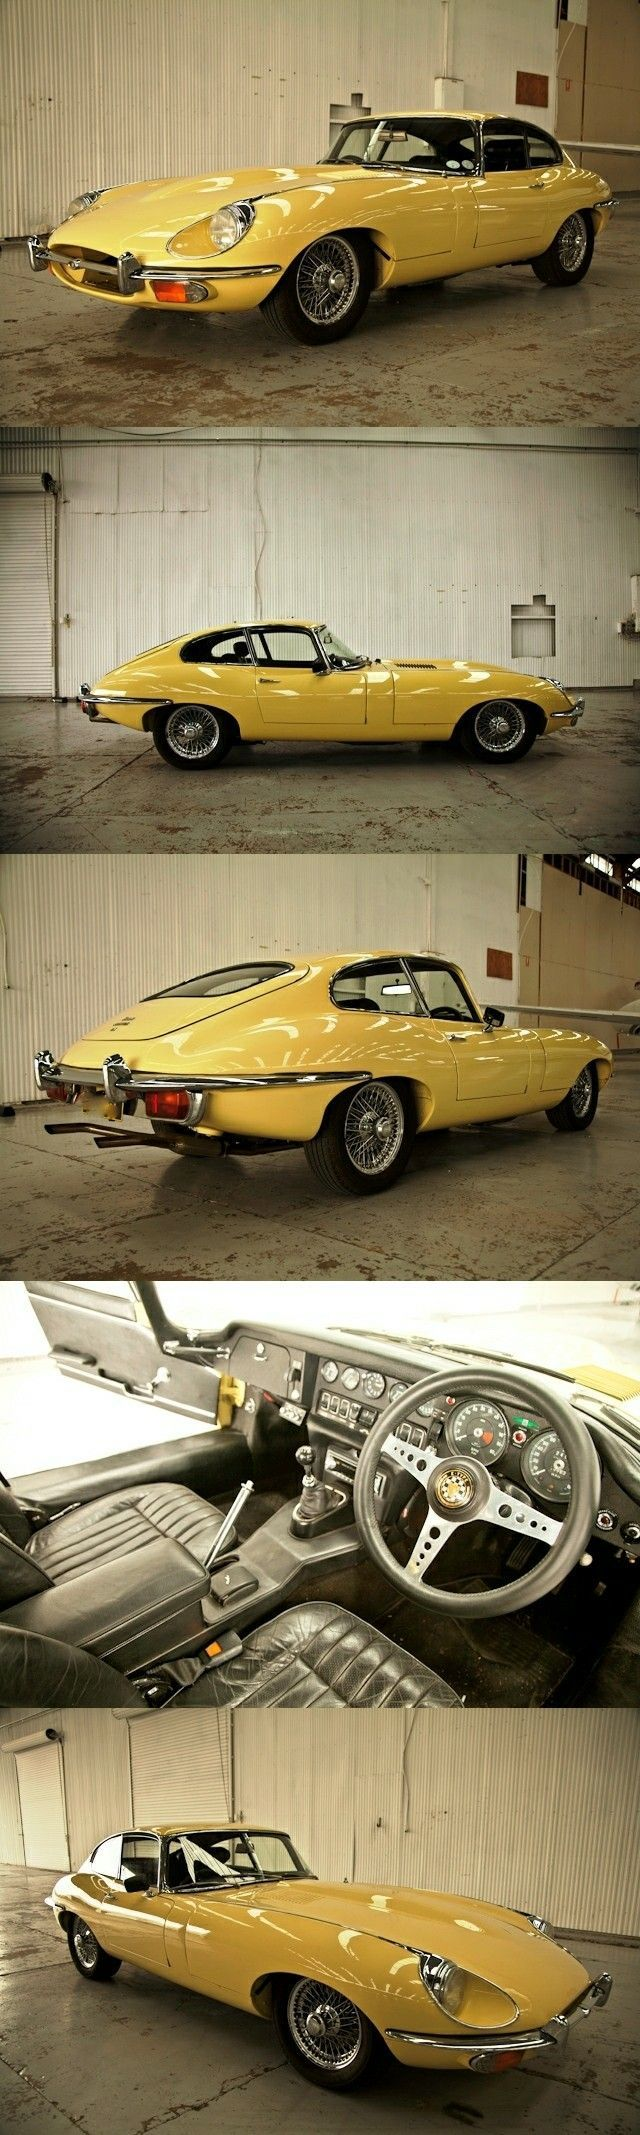 121 Best Jagur Images On Pinterest Jaguar Cars And Car Stuff Wiring Diagrams 1957 Xk140 1970 E Type Series Ii 42 Coupe